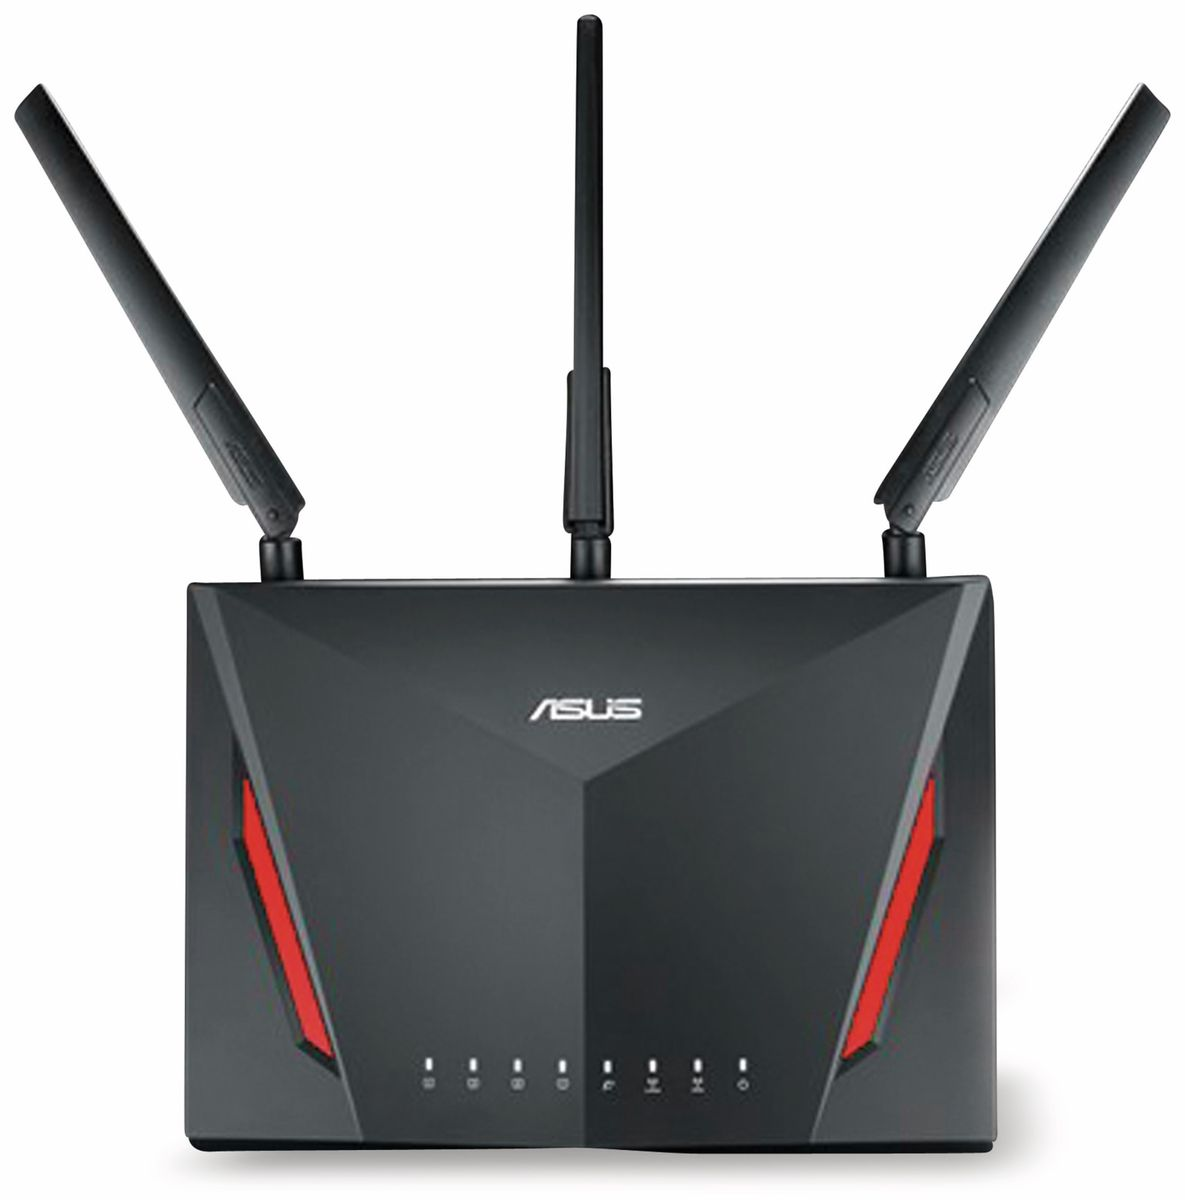 WLAN-Router ASUS RT-AC86U, 2917 MBit/s 2,4/5 GHz, MU-MIMO